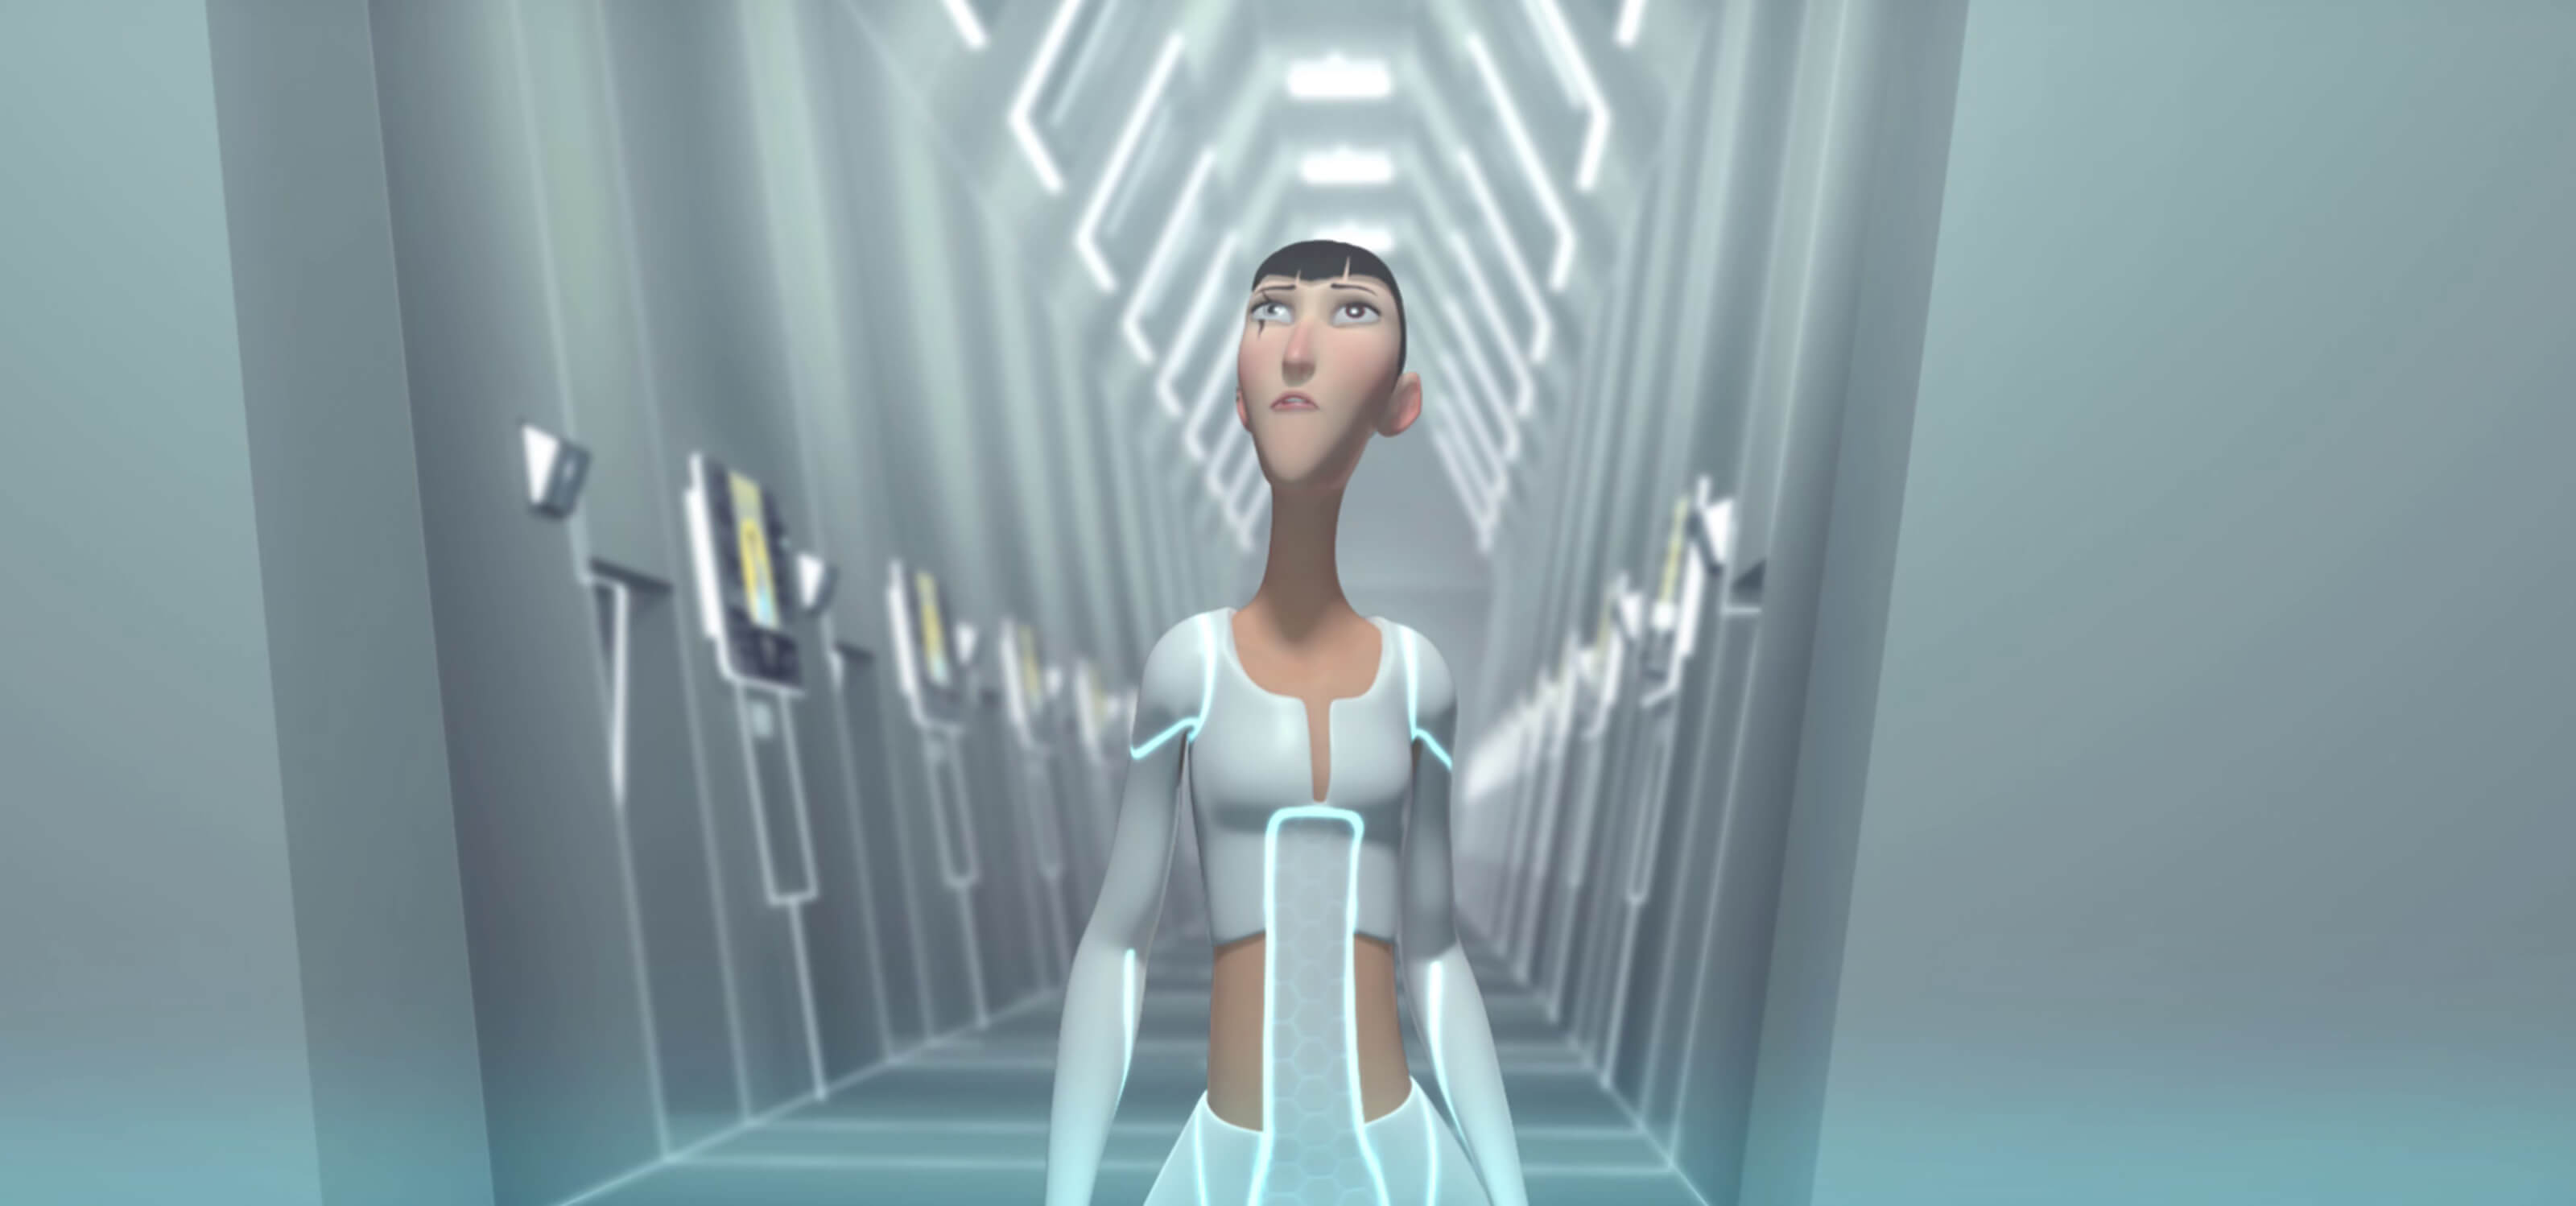 Screenshot from DigiPen Europe-Bilbao student animation REA of the main character walking down a futuristic hallway